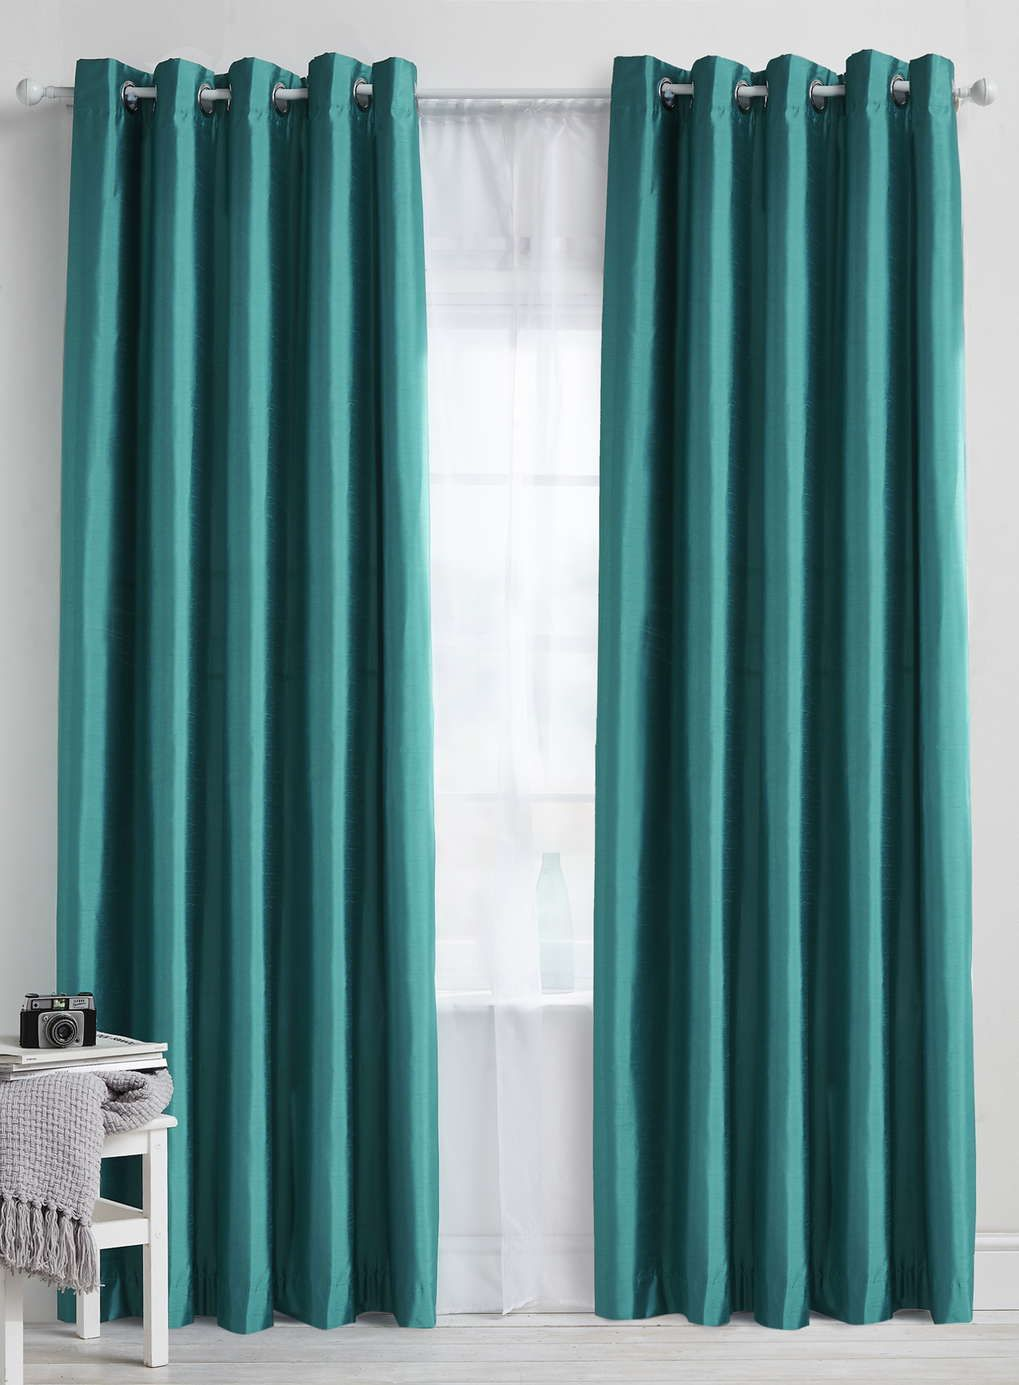 Teal plain faux silk blackout thermal eyelet curtain bhs for Living room ideas blue curtains